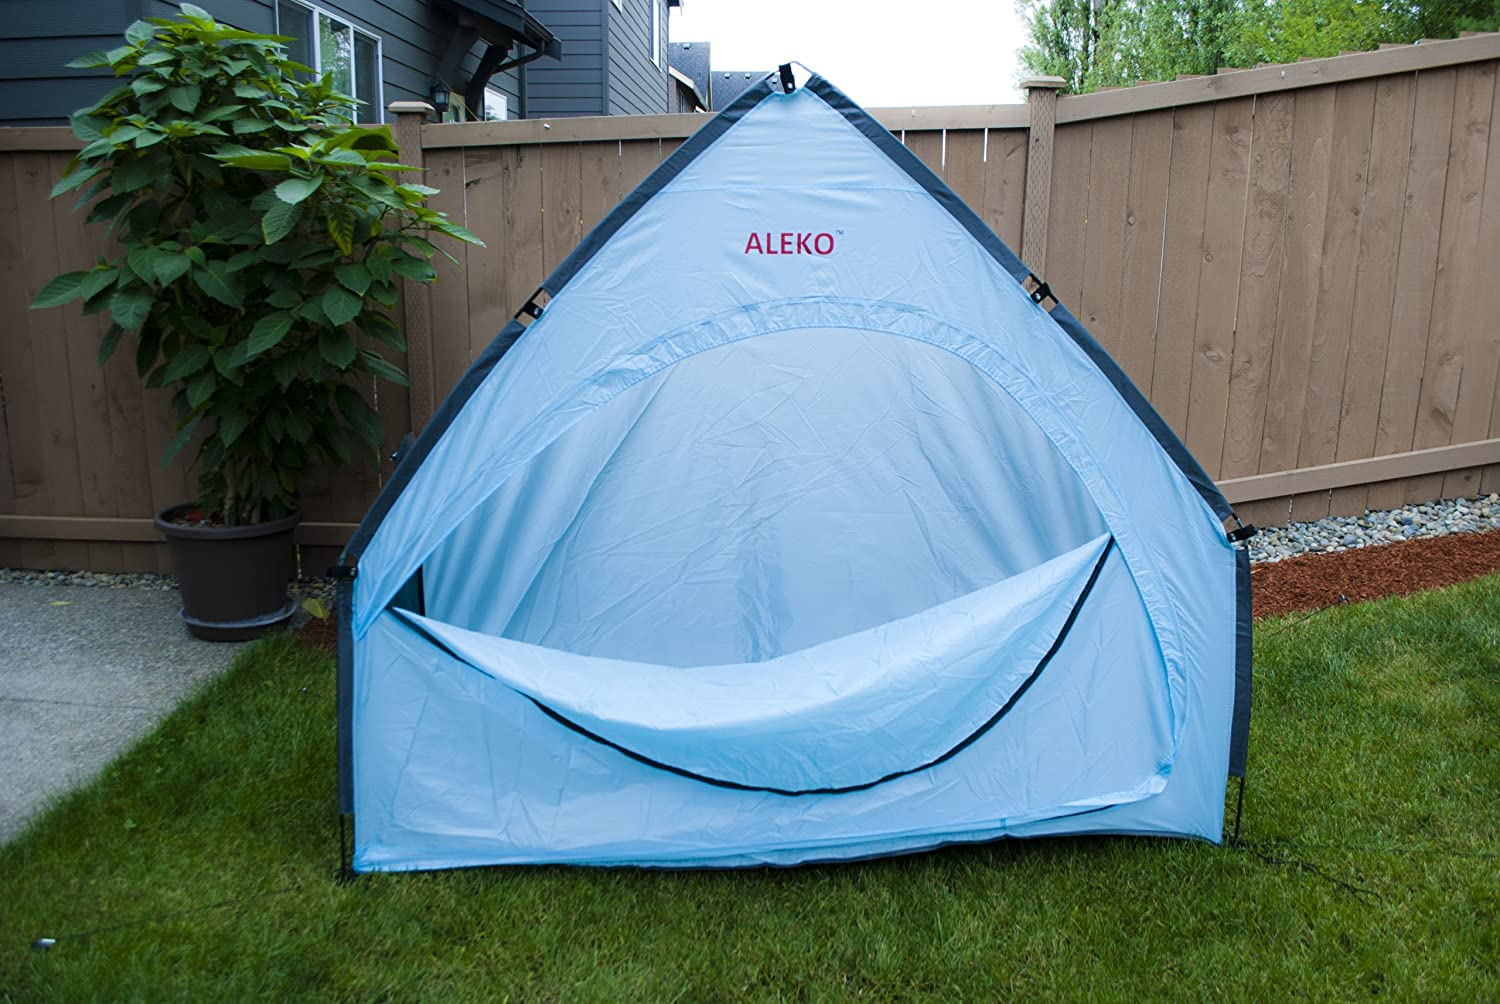 ALEKO BS68BL Portable Pop Up Bike Tent Bicycle Storage Shed Weather Resistant Protection Outdoor with Carrying Case 79 X 63 X 32 Inches Blue Bike Storage